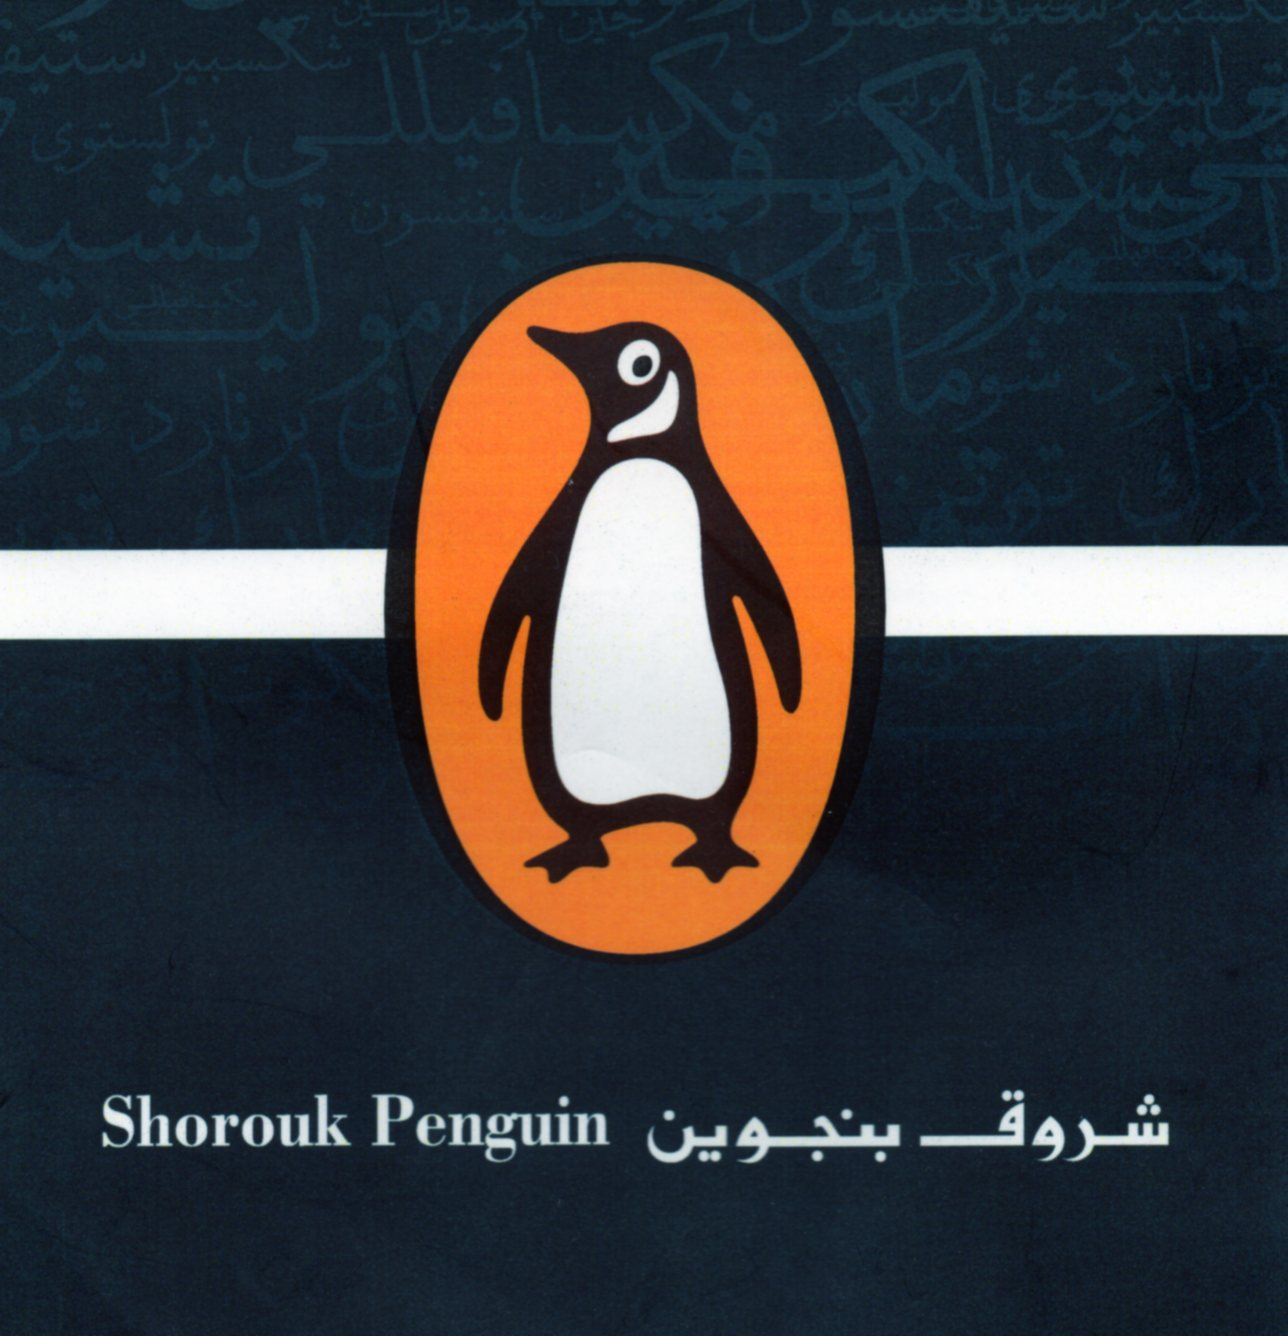 Shorouk Penguin logo